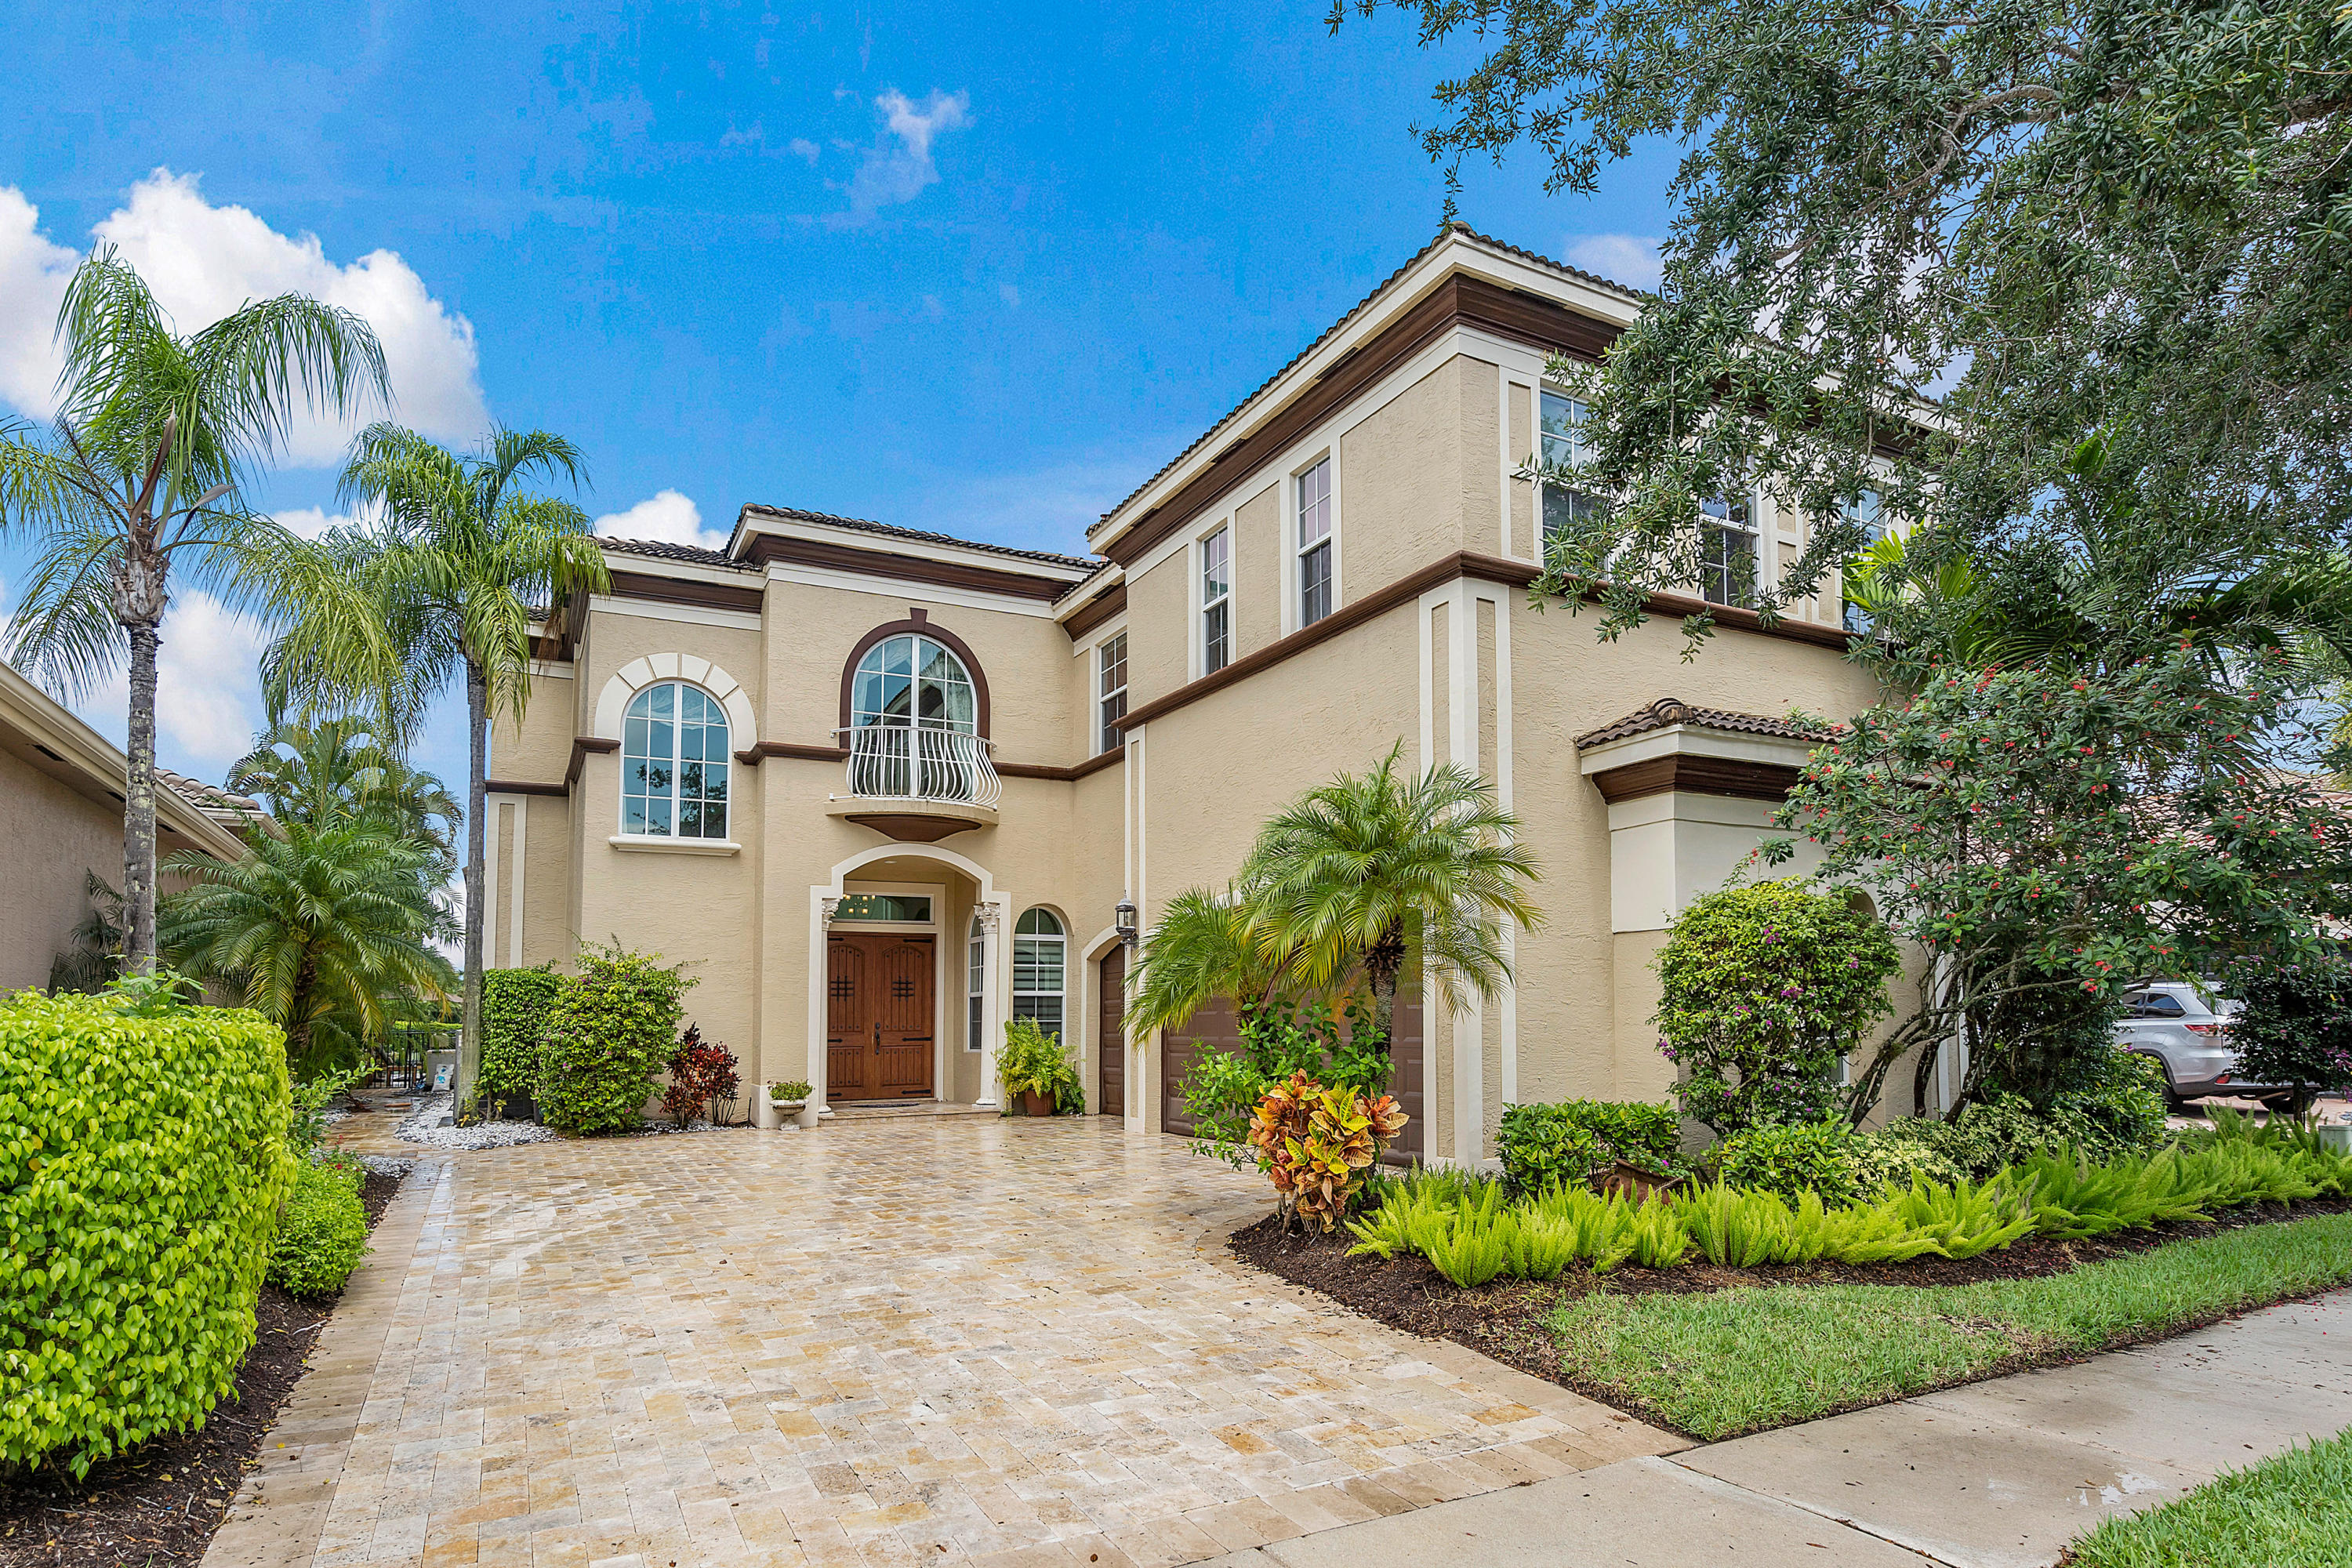 Home for sale in Mizner's Preserve Delray Beach Florida